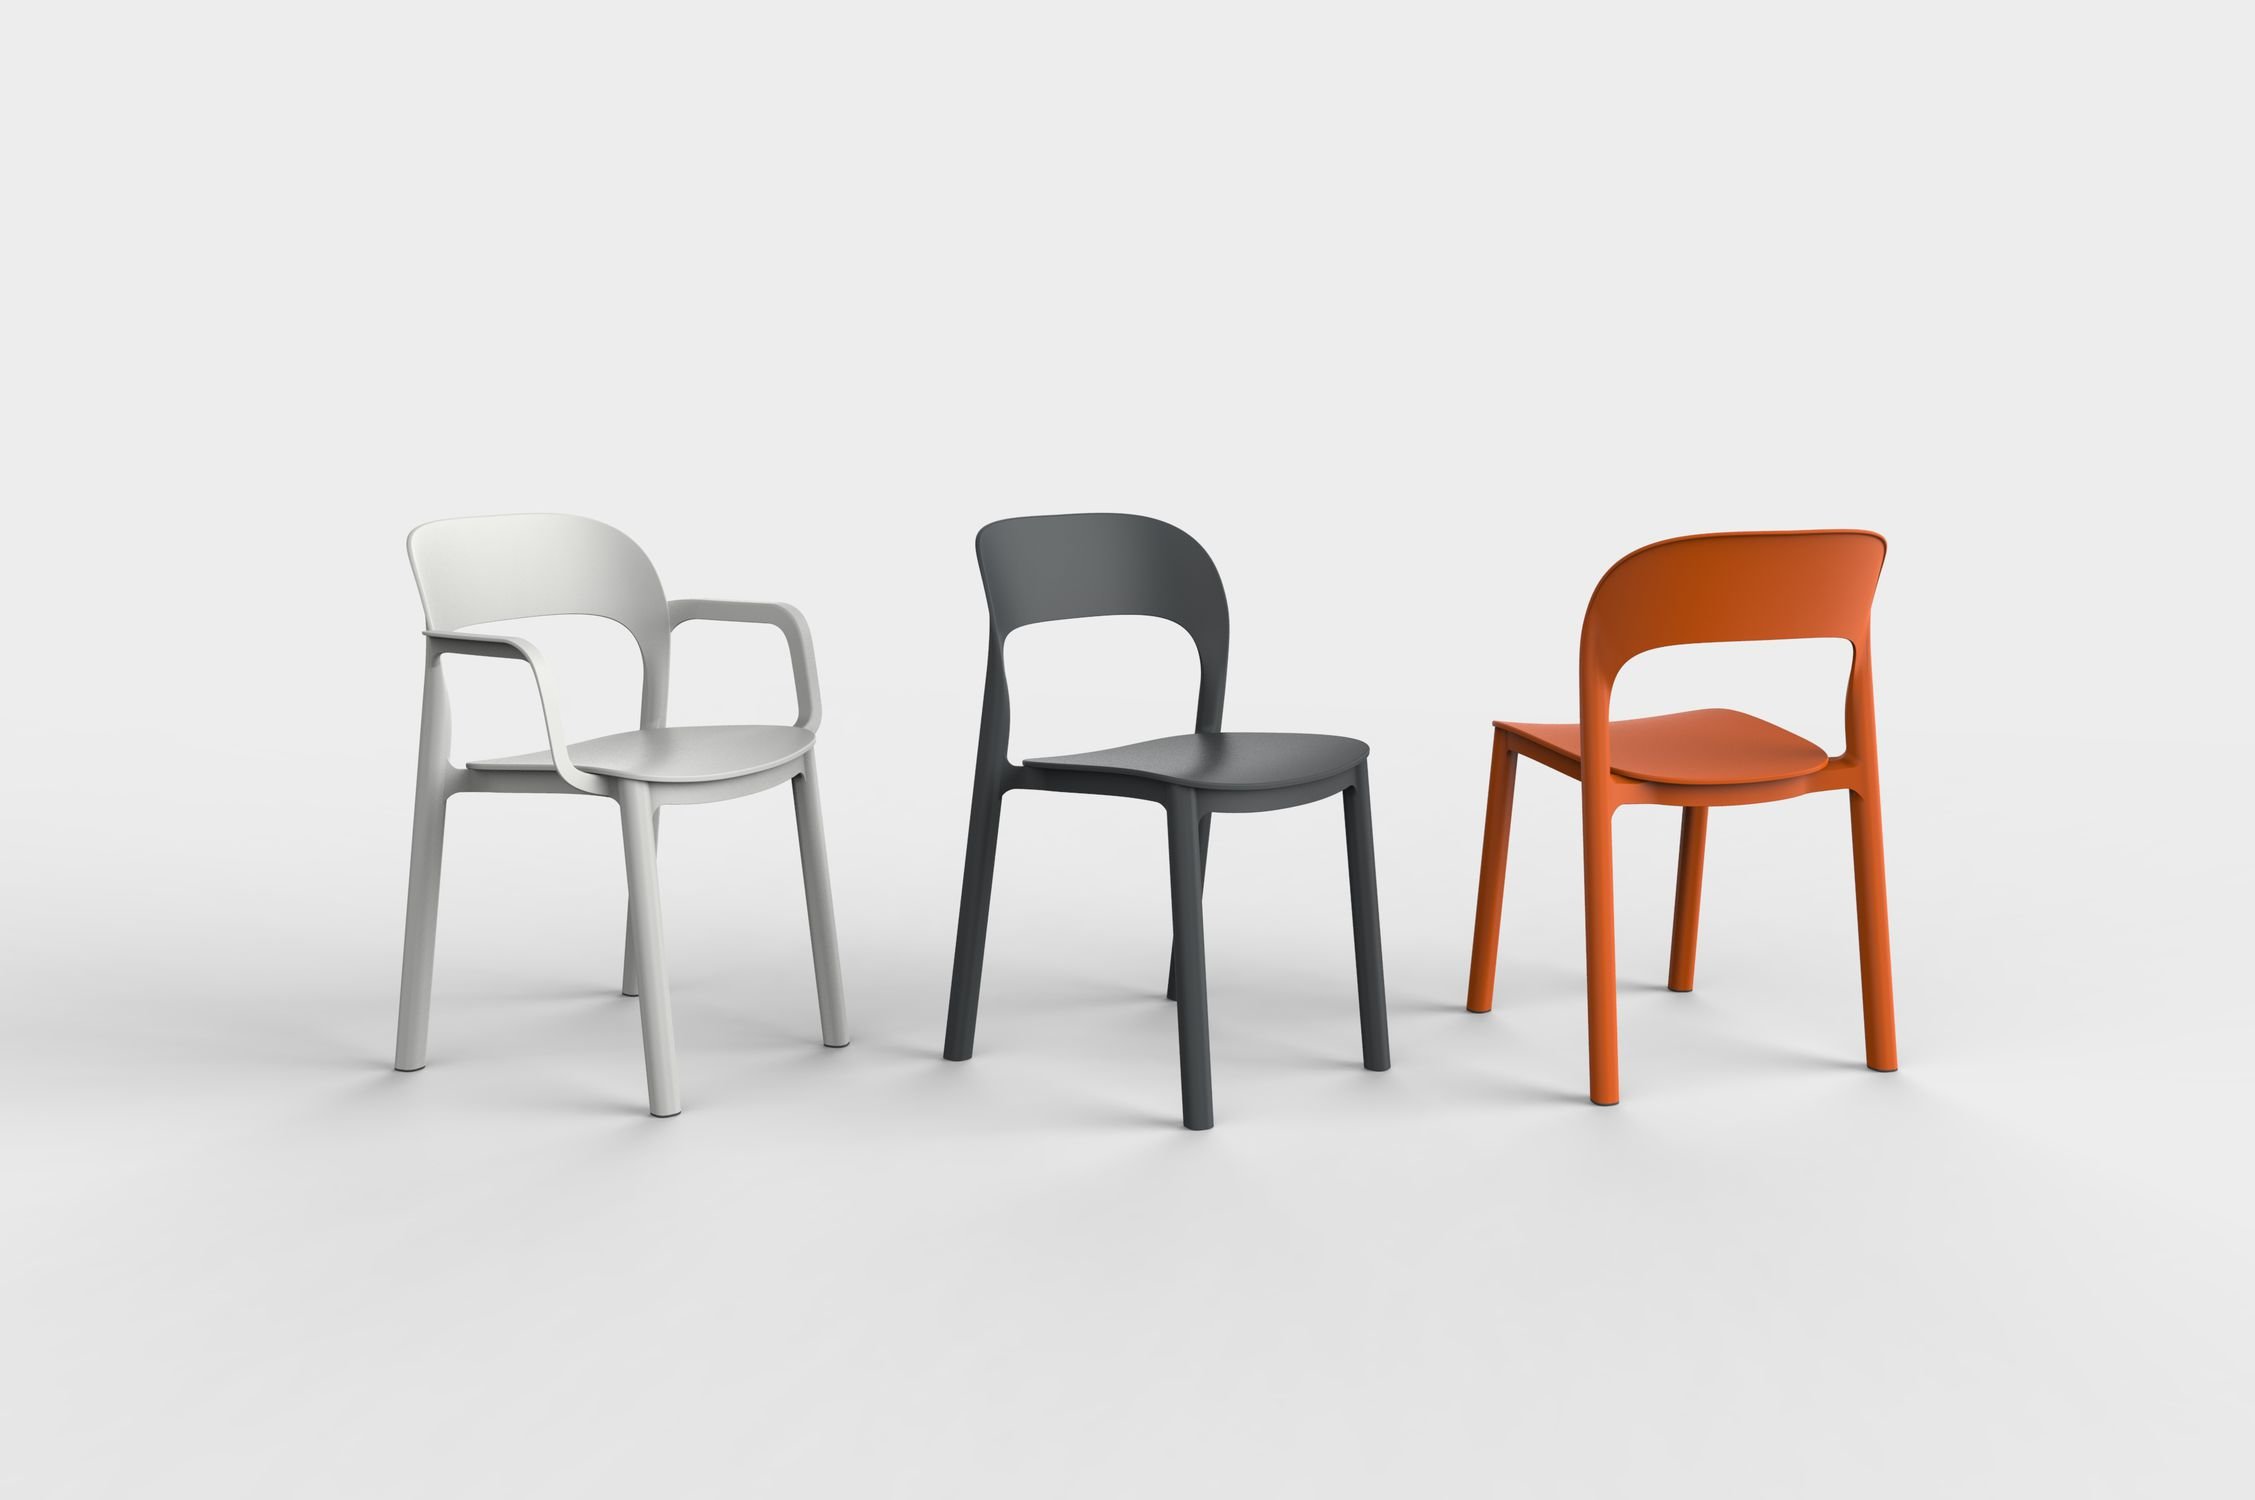 resols skin leg restaurant chair by resol nufurn commercial  contemporary chair plastic commercial stackable ona by contemporary chair plastic commercial stackable ona by david carrasco